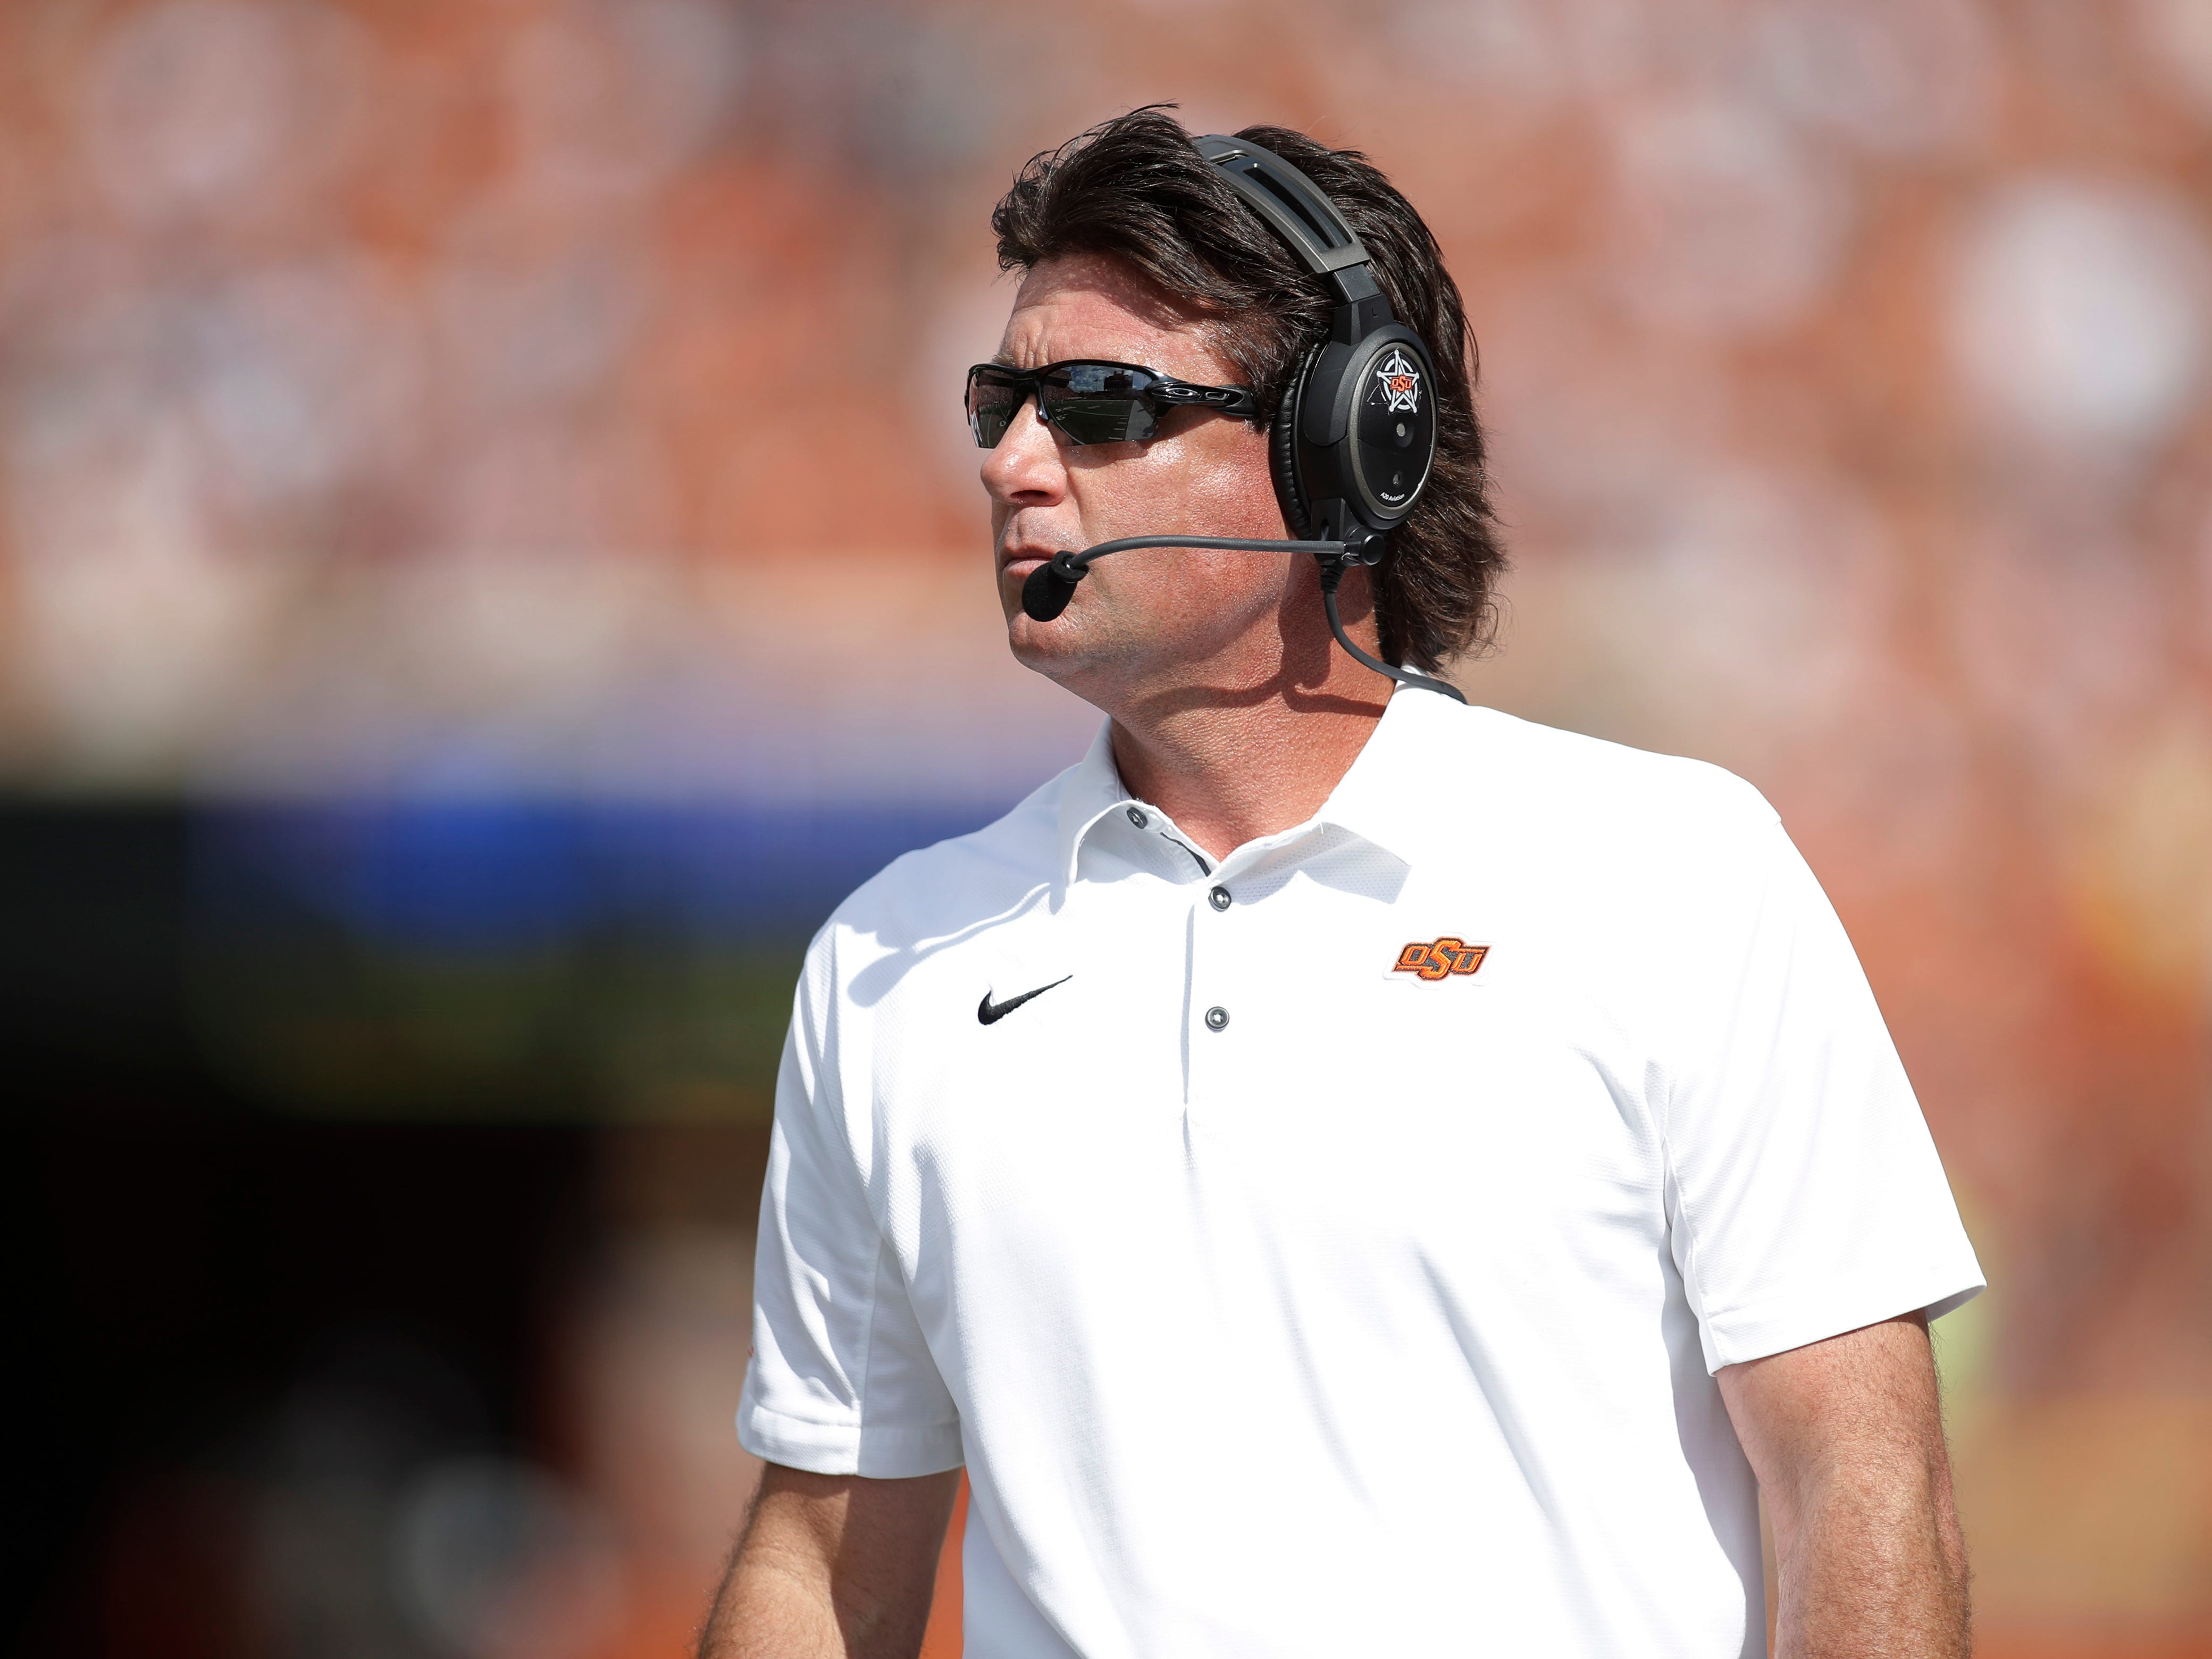 Oklahoma State Cowboys head coach Mike Gundy on the sidelines against the Texas Longhorns at Darrell K Royal-Texas Memorial Stadium.